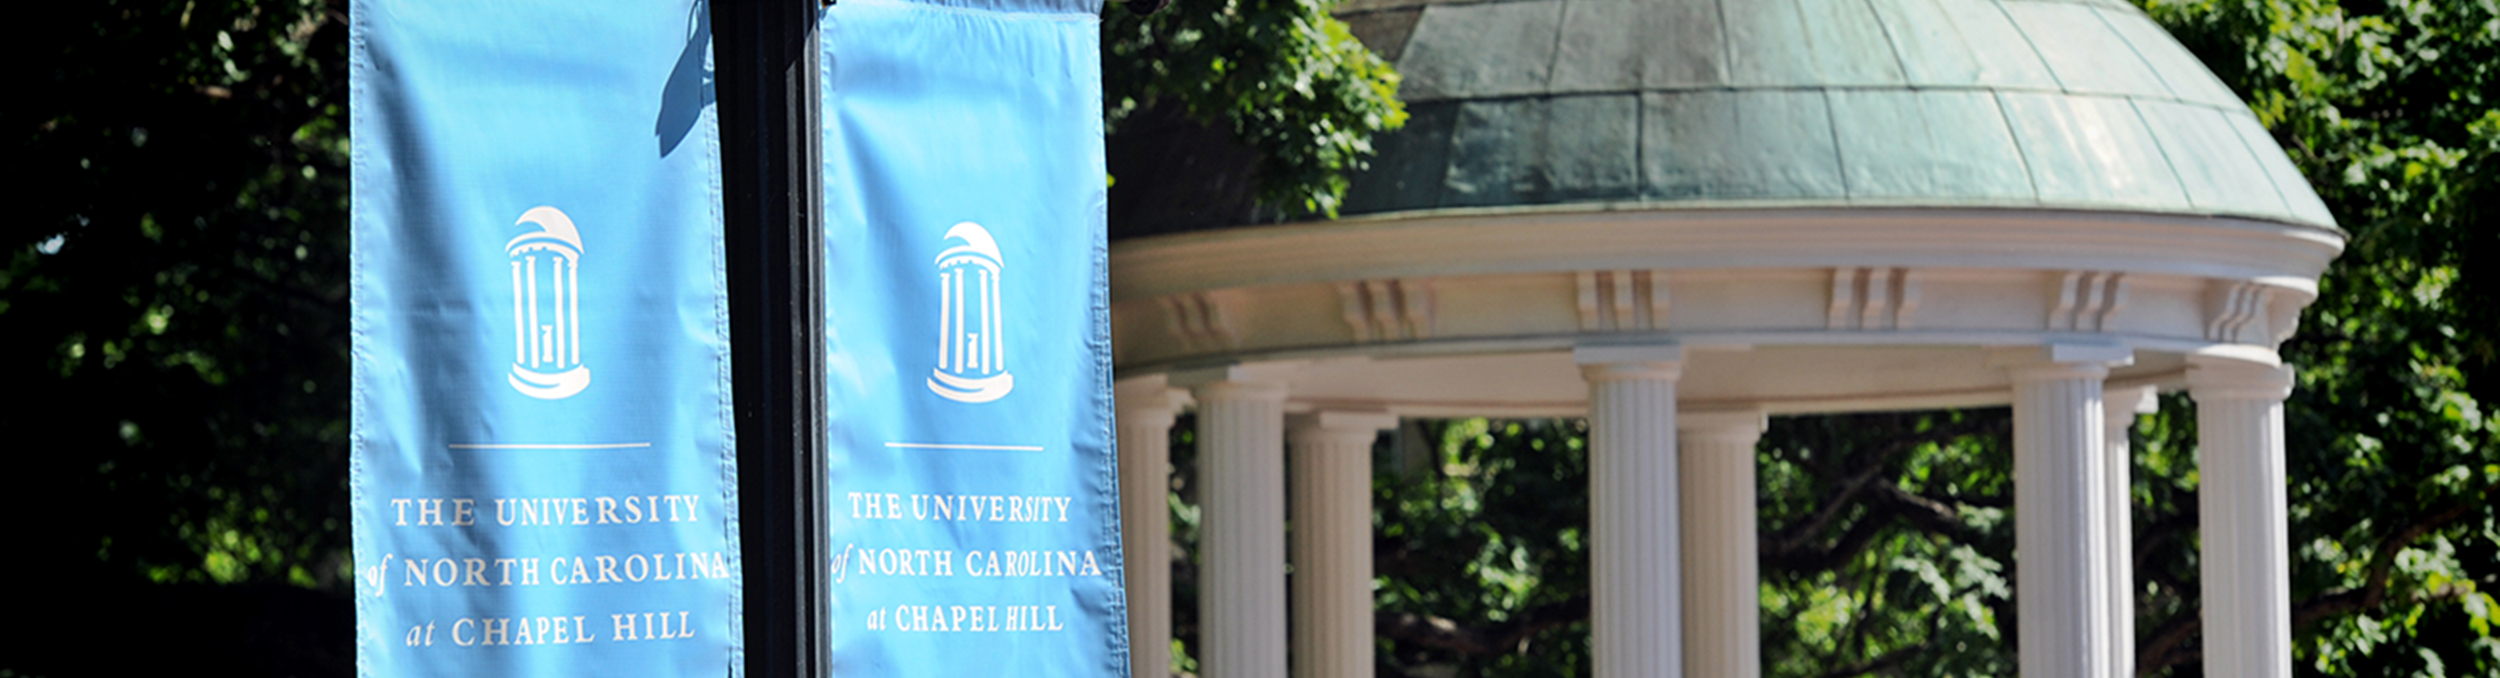 Views of the campus as it is prepared for commencement at the University of North Carolina at Chapel Hill. The university will hold commencement Sunday, May 10.